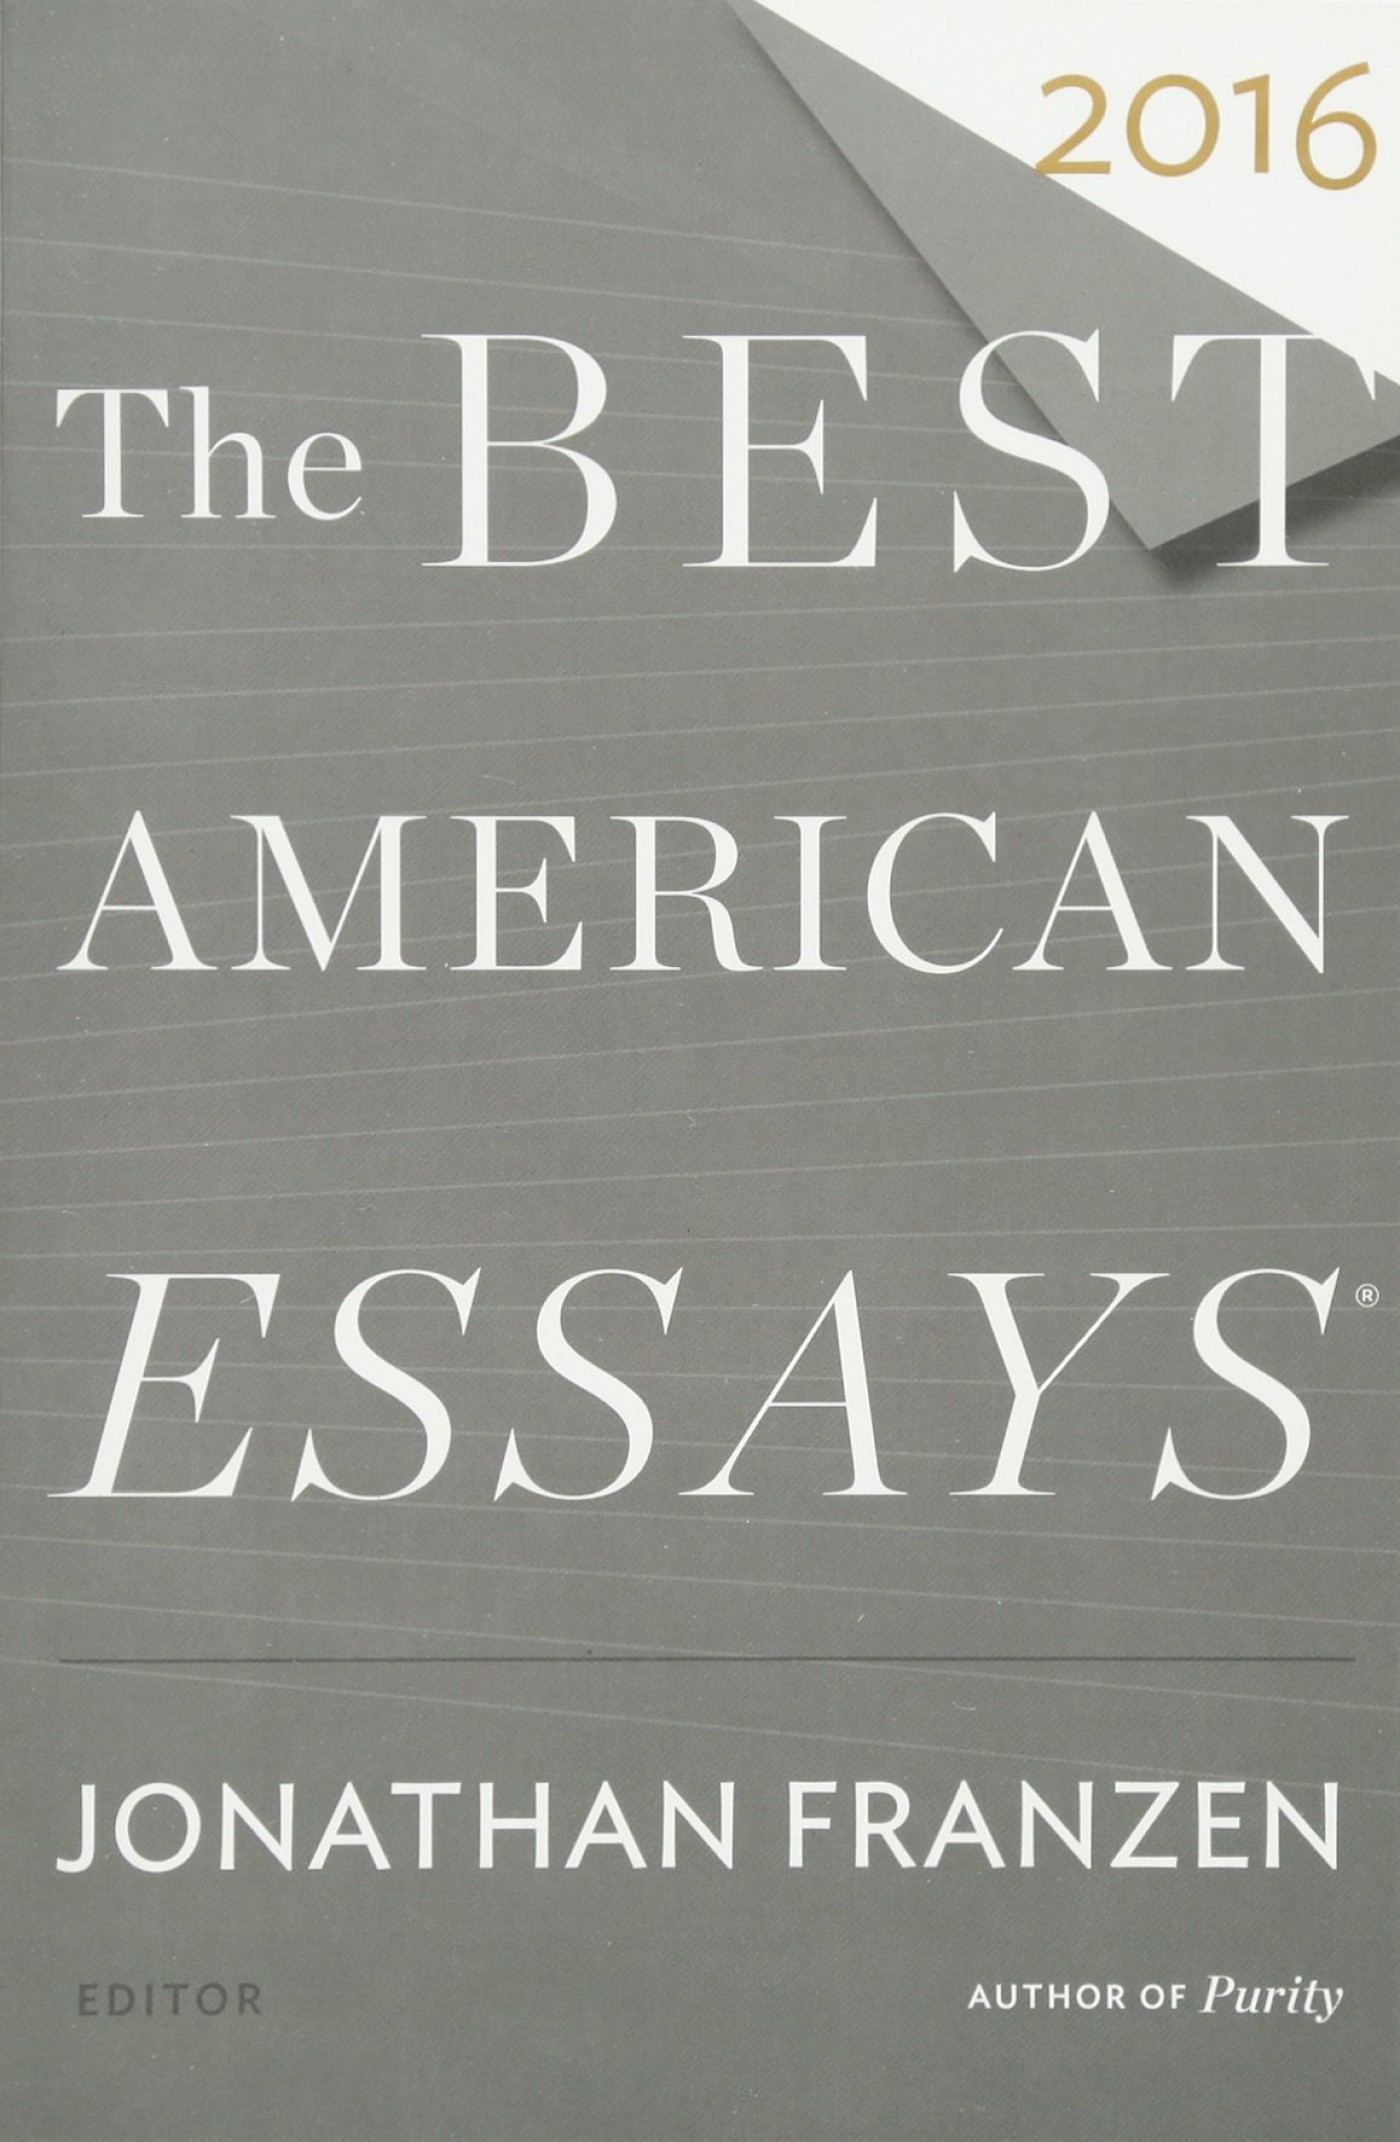 005 The Best American Essays Essay Example Wonderful 2013 Pdf Download Of Century Sparknotes 2017 1400